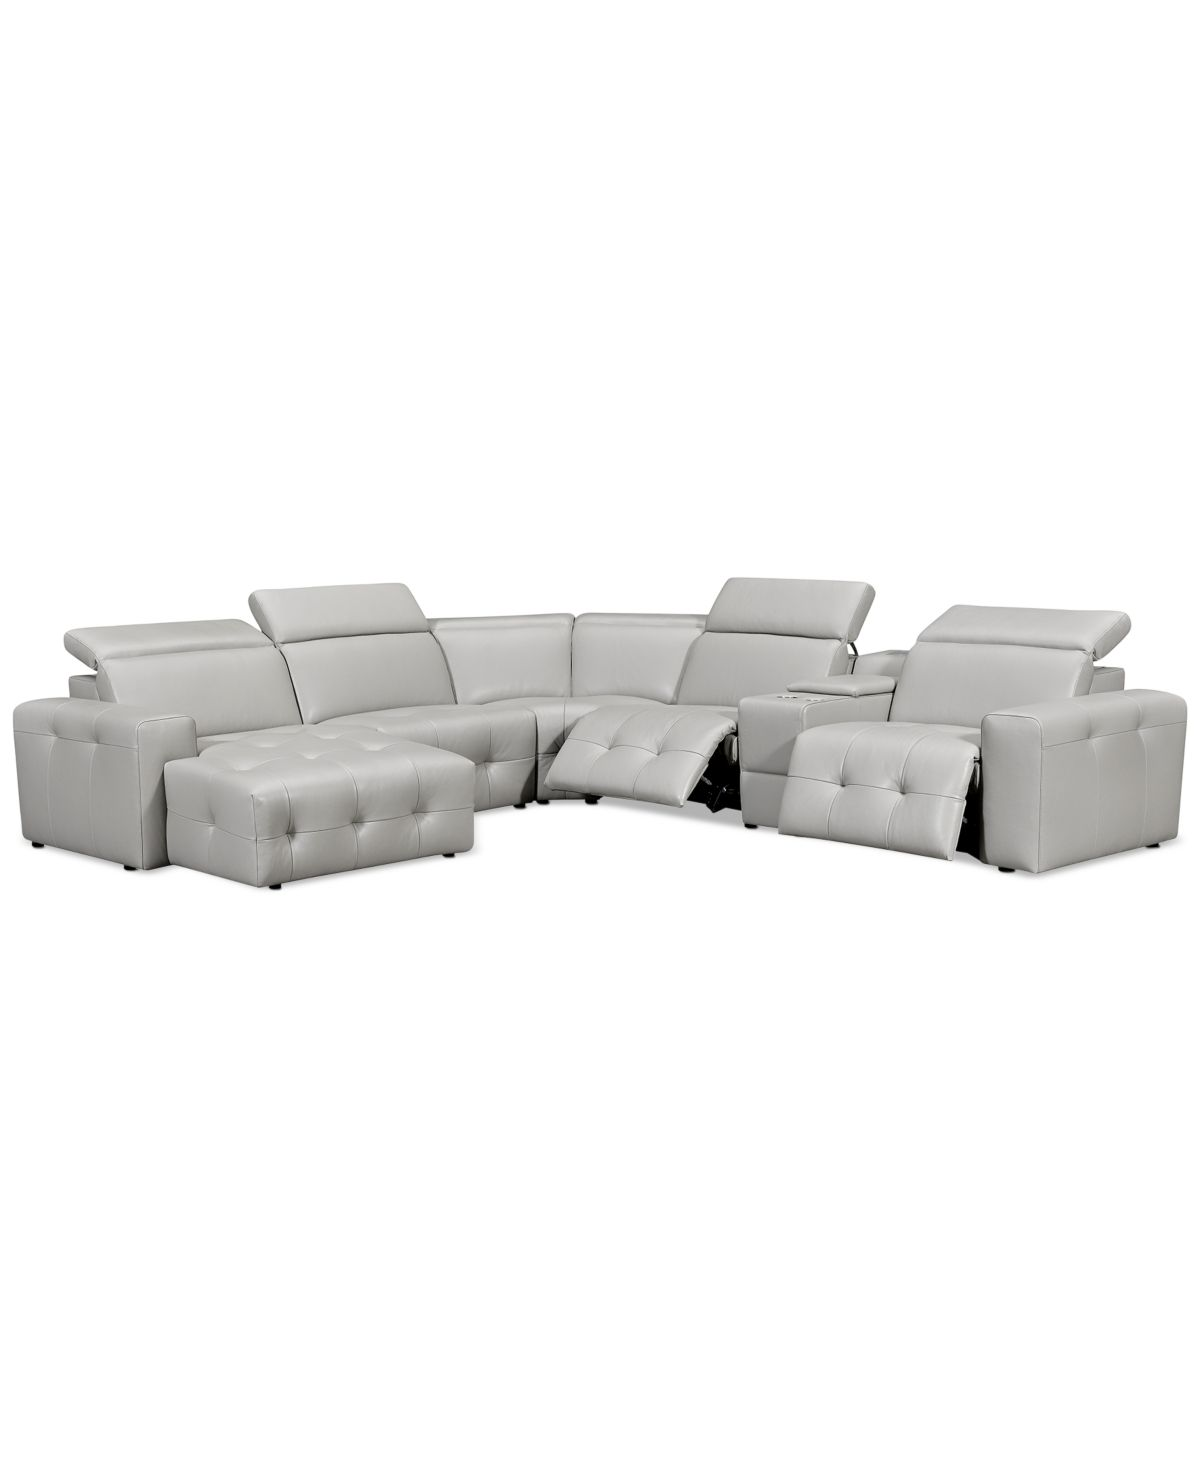 Fireplace Room Family Room Sectional Sofa Living Room Grey